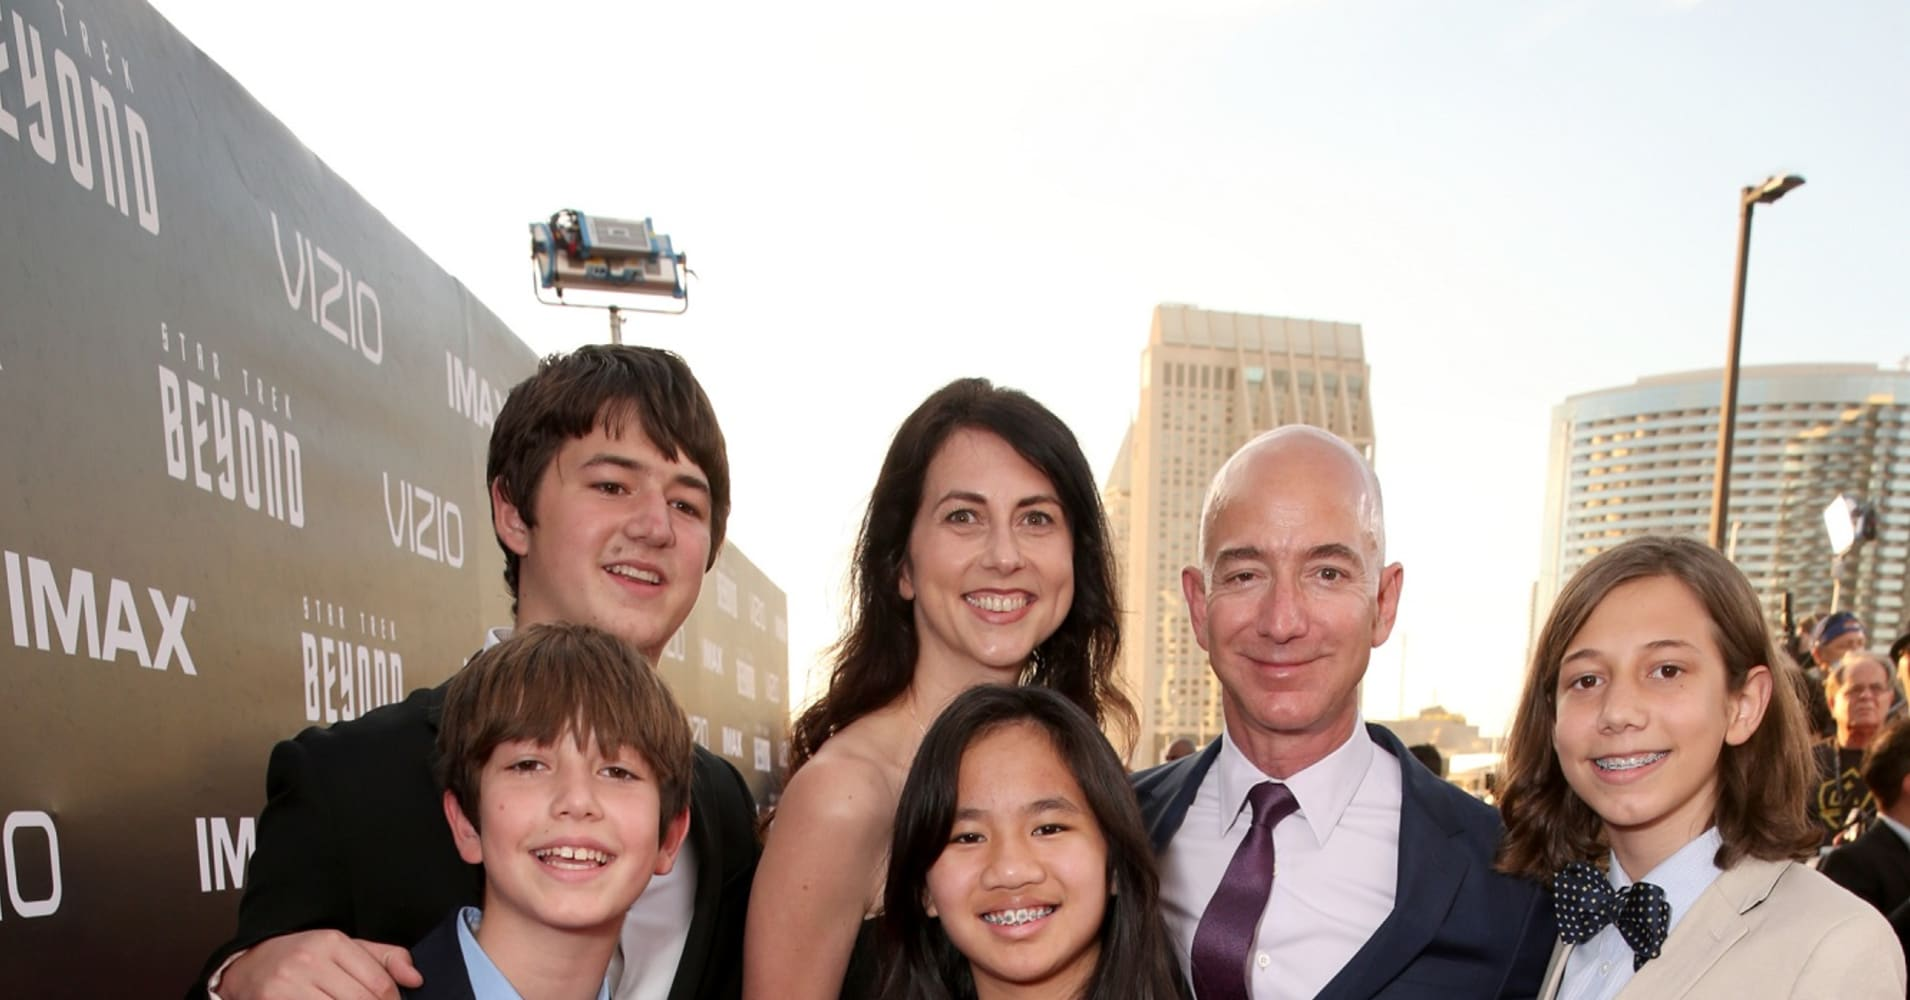 Amazon Ceo Jeff Bezos Shares The Career Advice He Gives His Kids